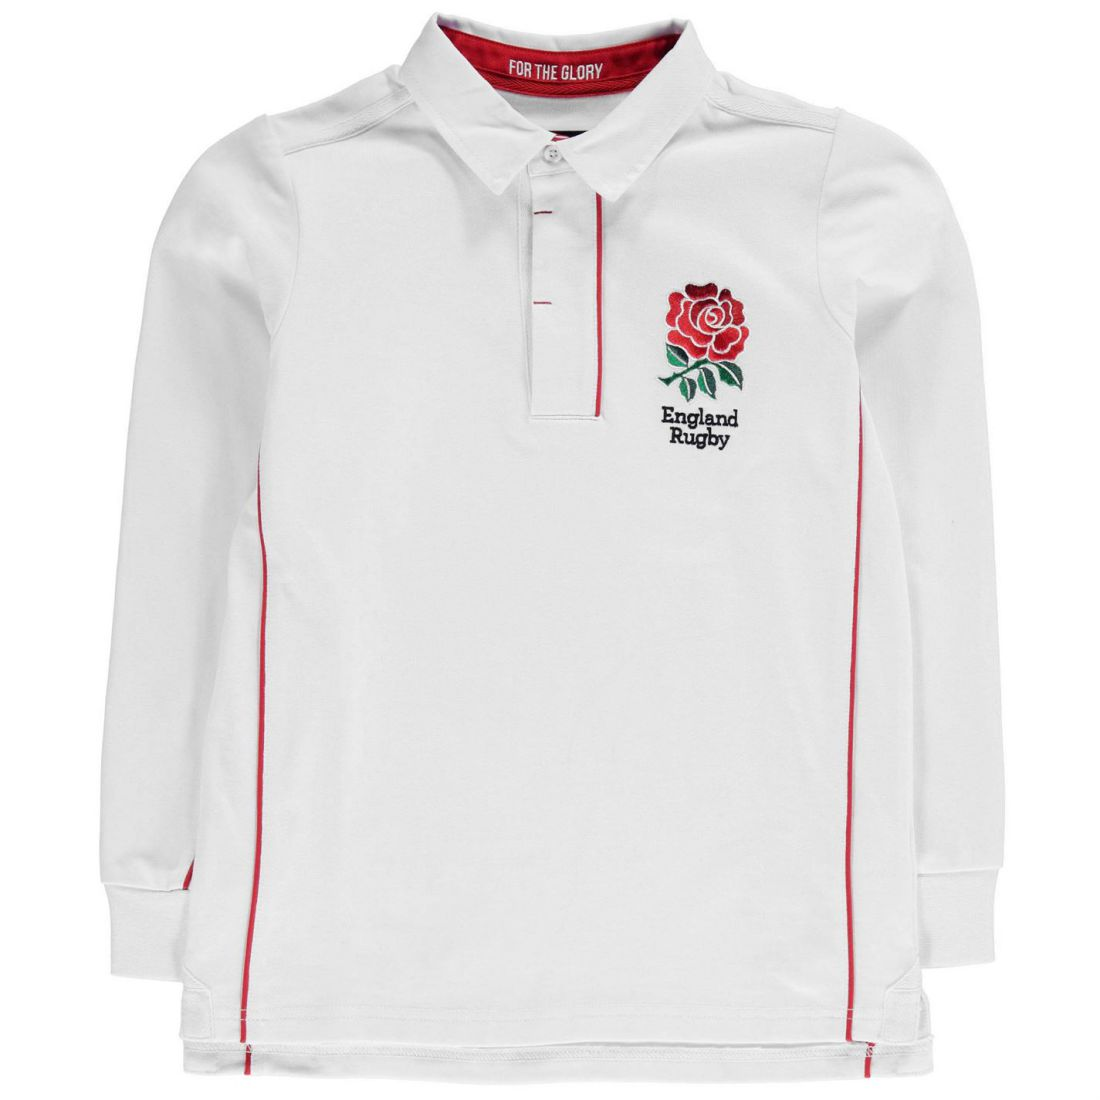 RFU Childrens England Jersey Boys Polo Shirt Top Long Sleeve Clothing